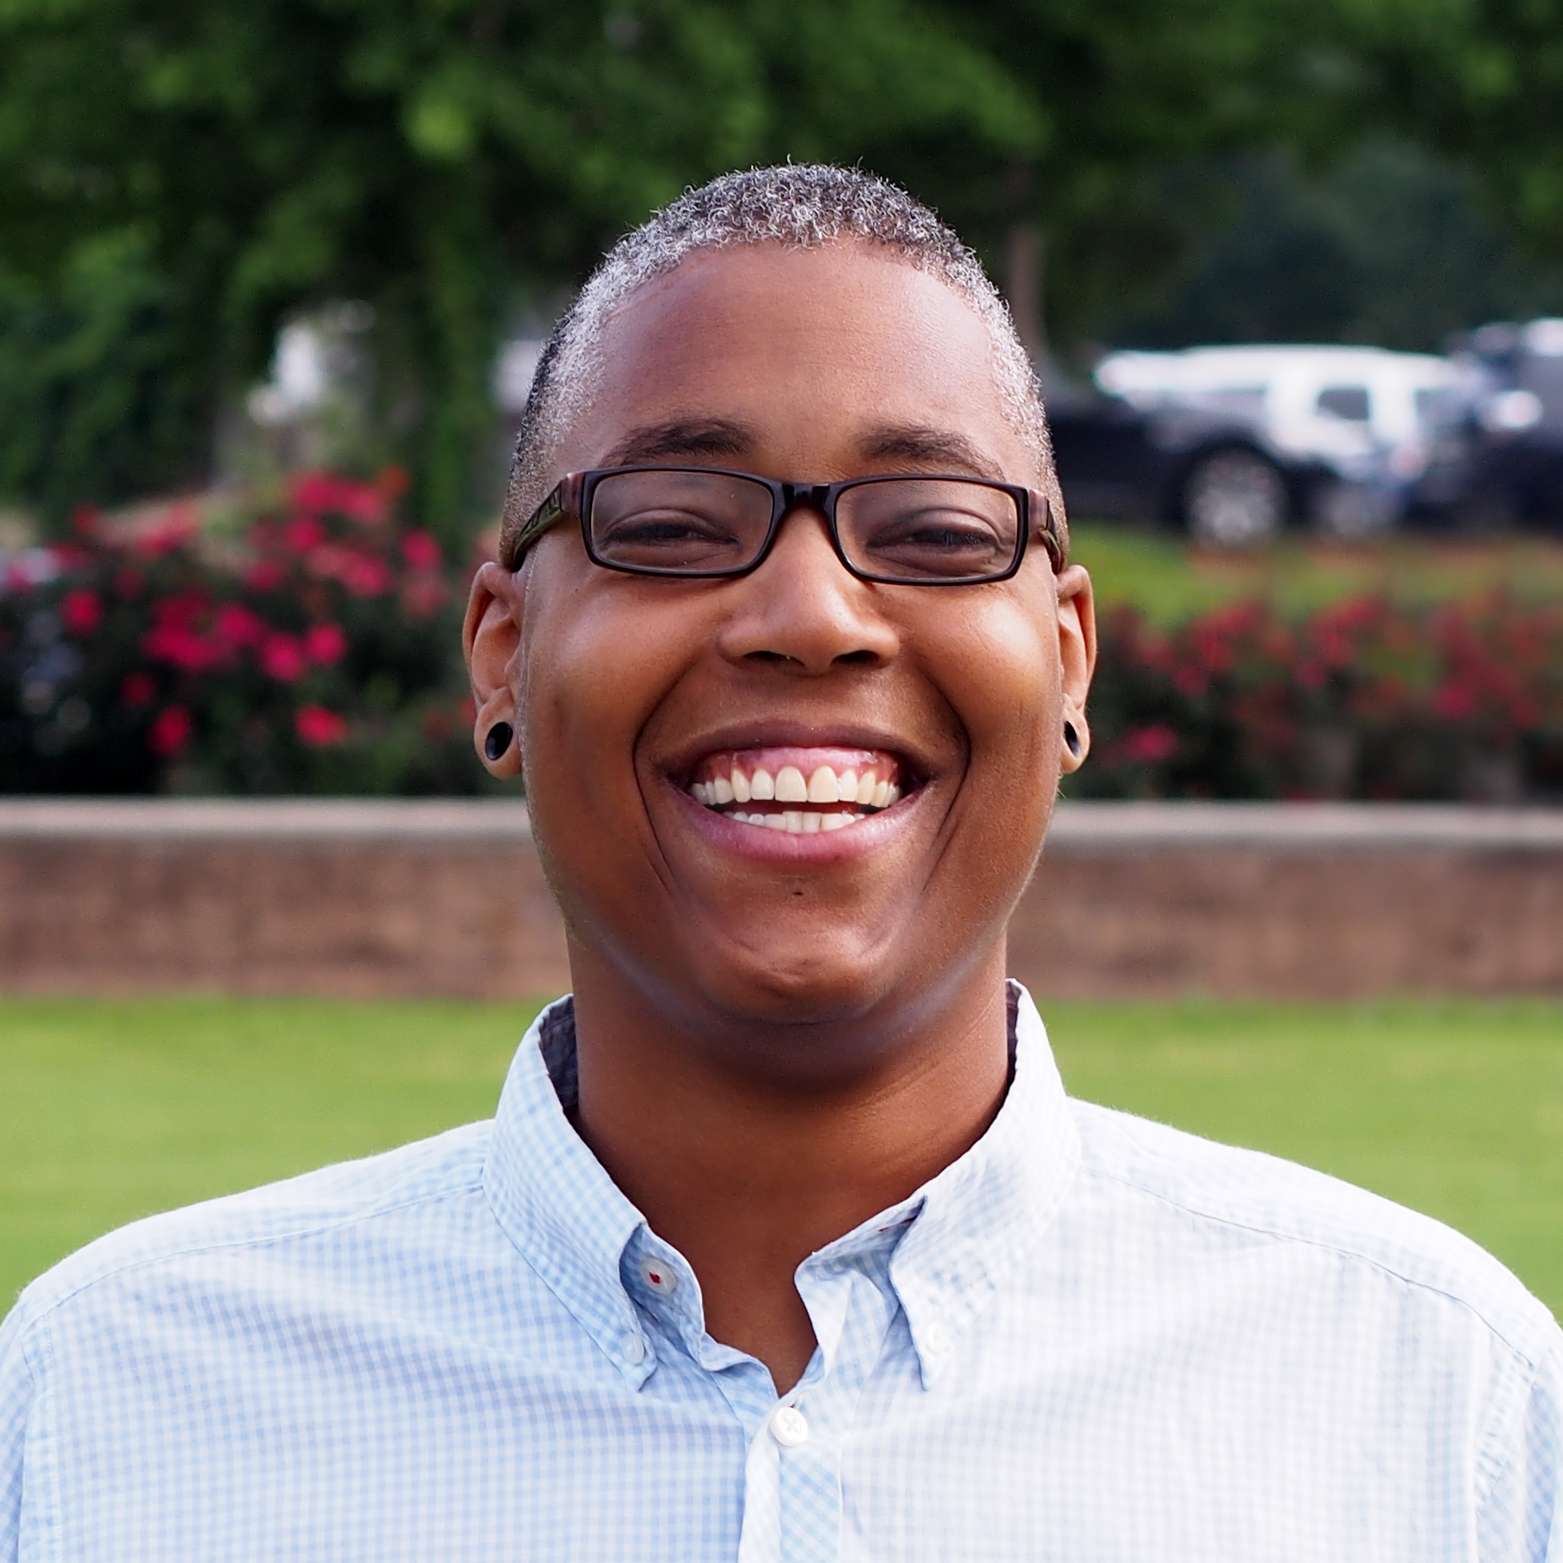 Image description: Sean is smiling at the camera in front of a green grass and flowers. Sean is wearing black framed glasses.